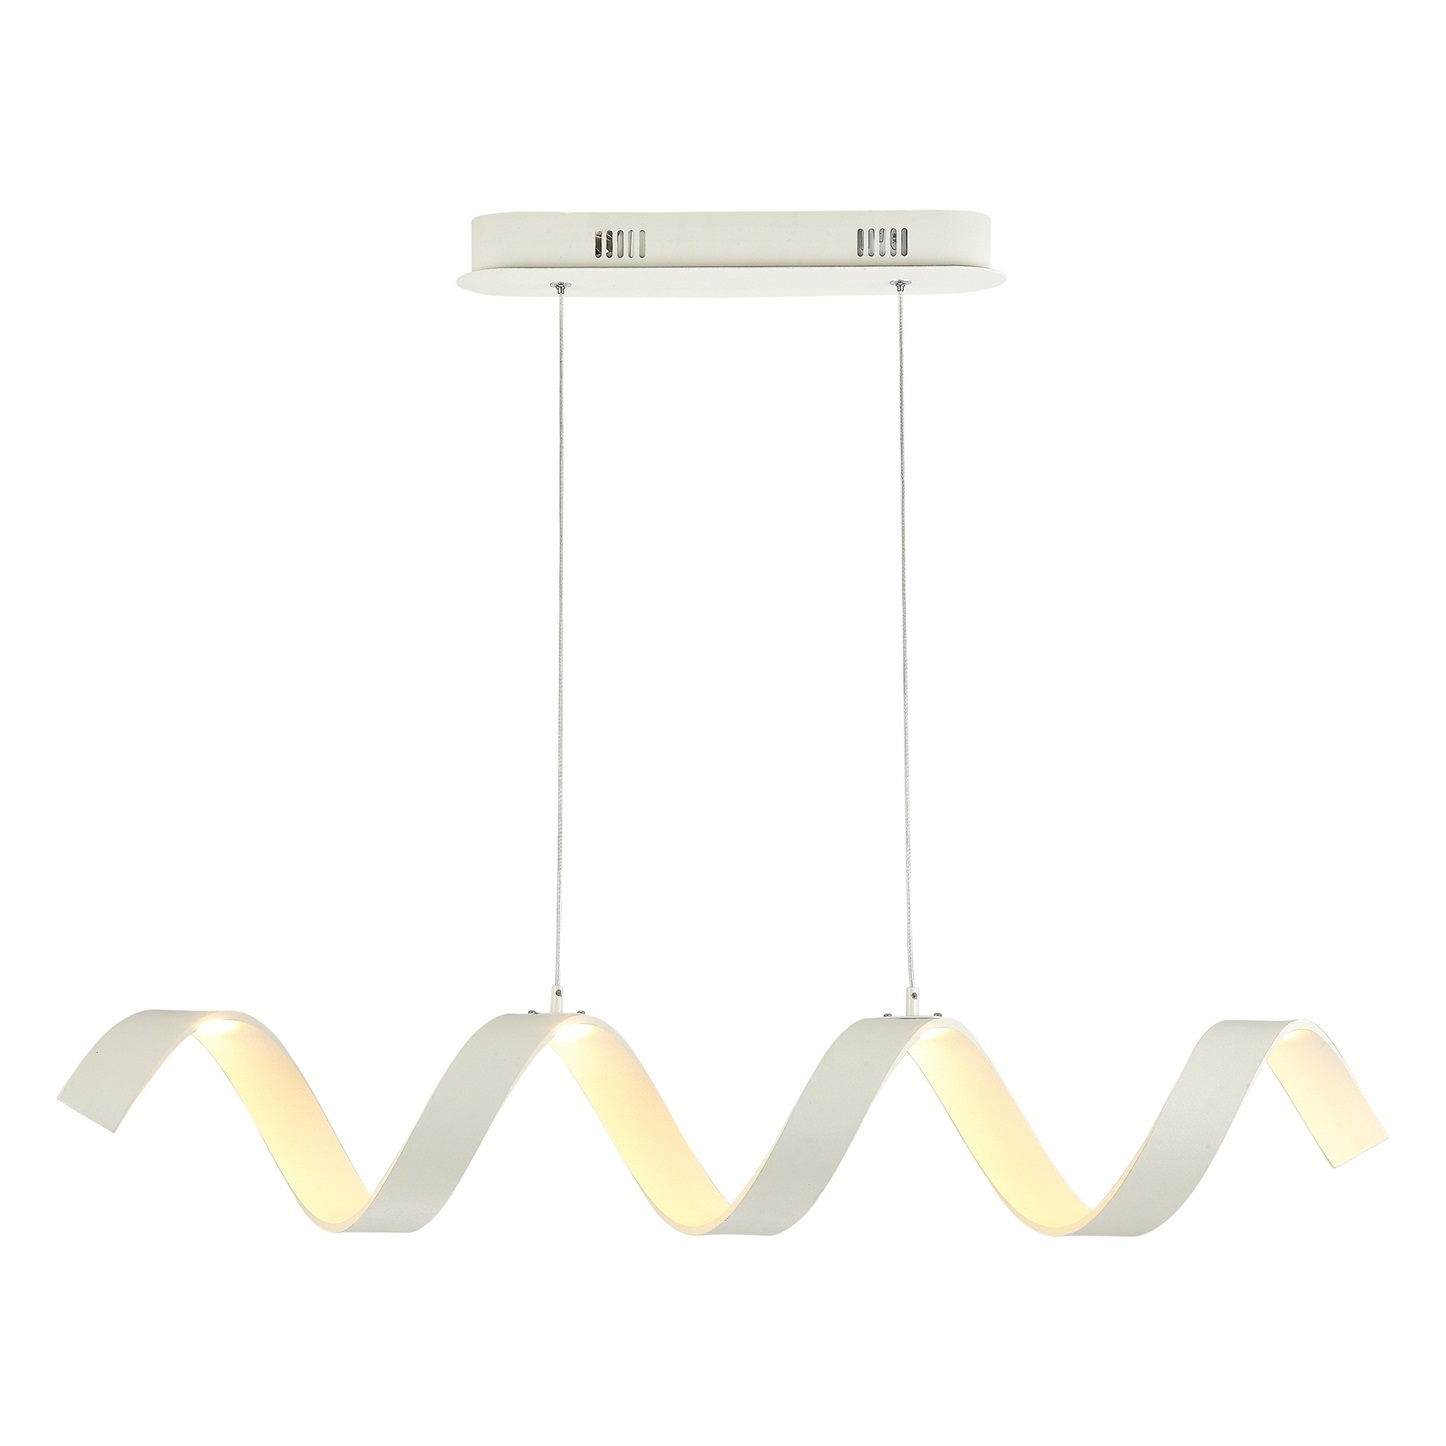 High Quality WHITE SPRING PENDANT LAMP Wholesale-Saintly